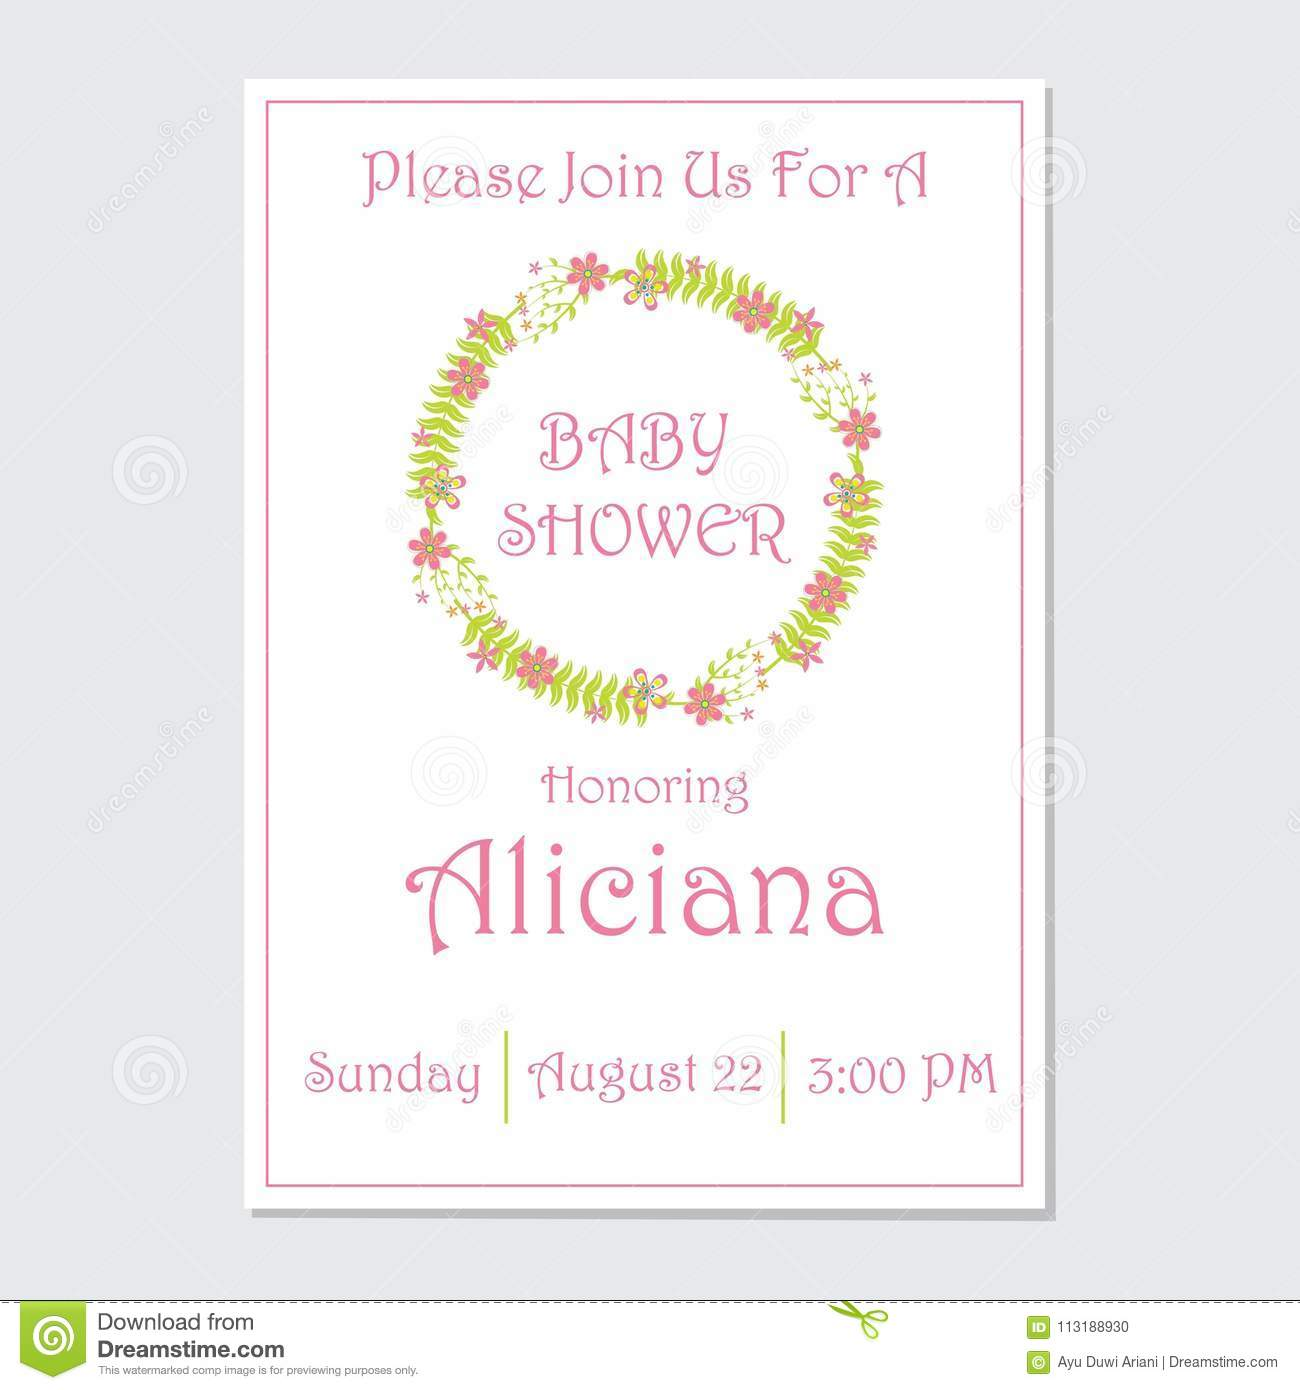 Baby Shower Invitation Card Vector Design Template With Pink Flowers